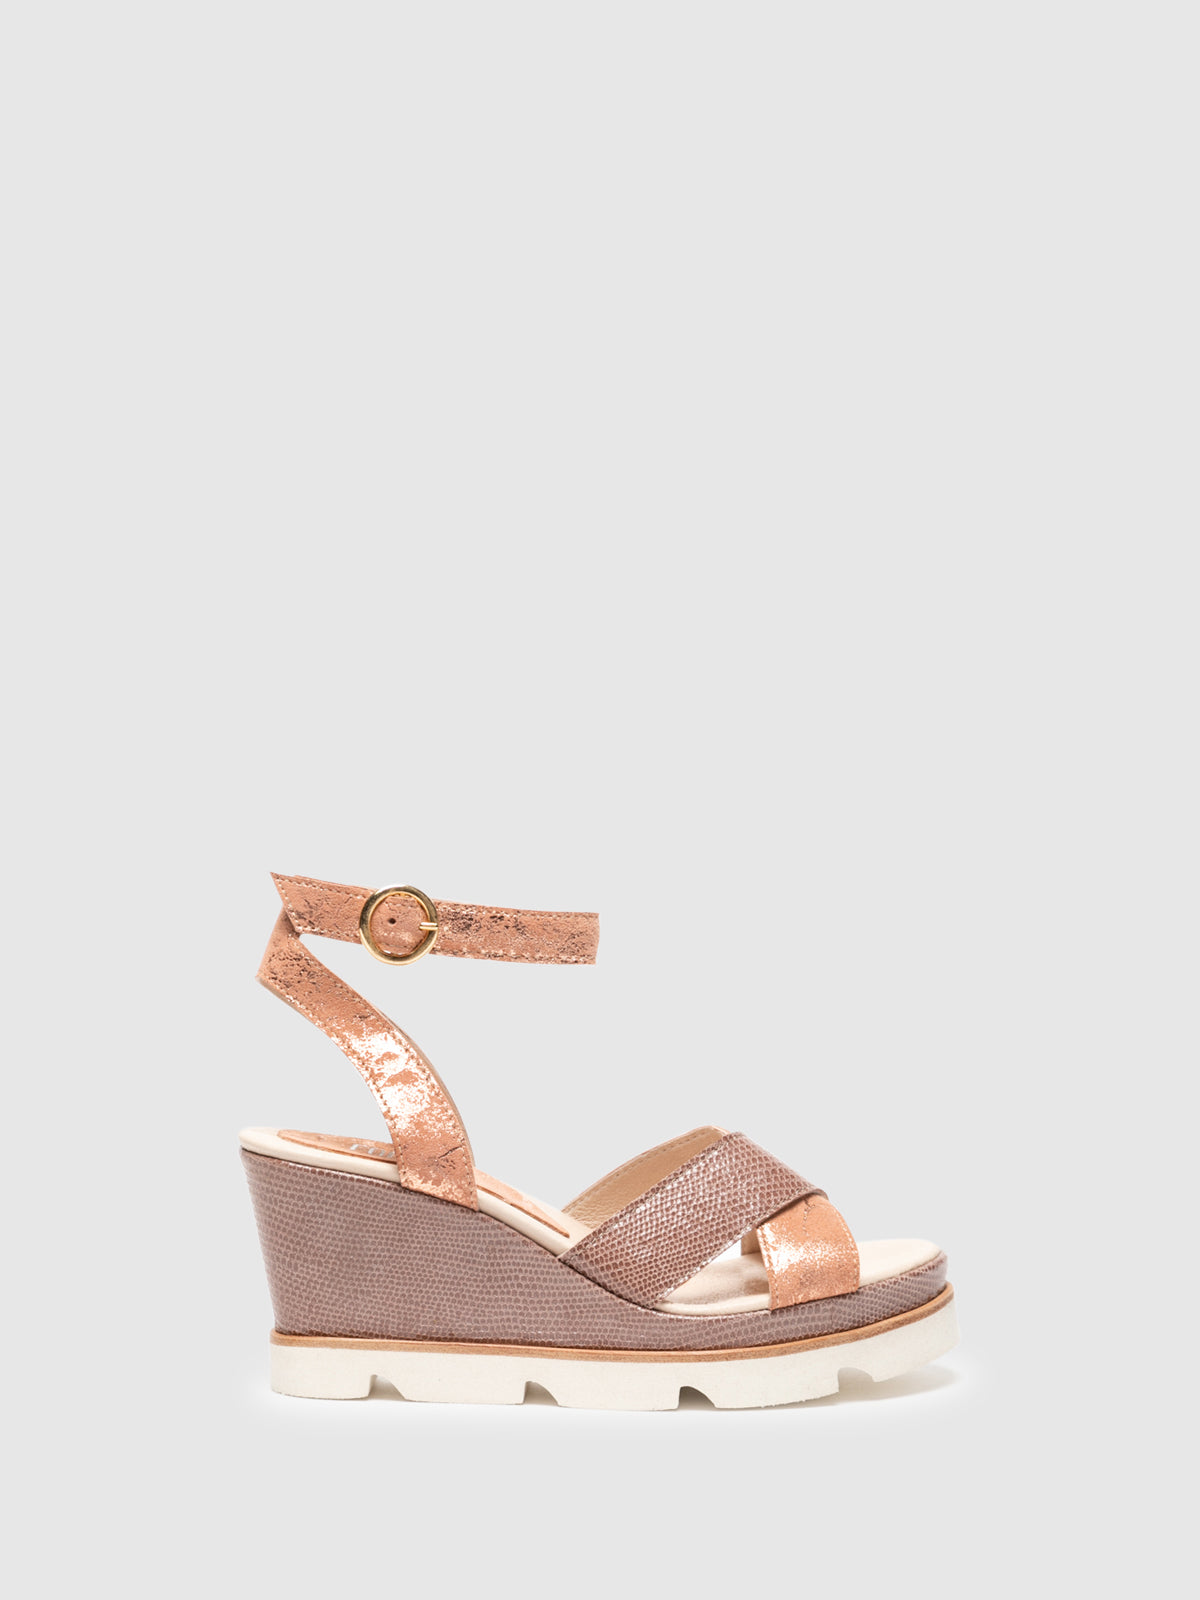 Foreva Pink Wedge Sandals